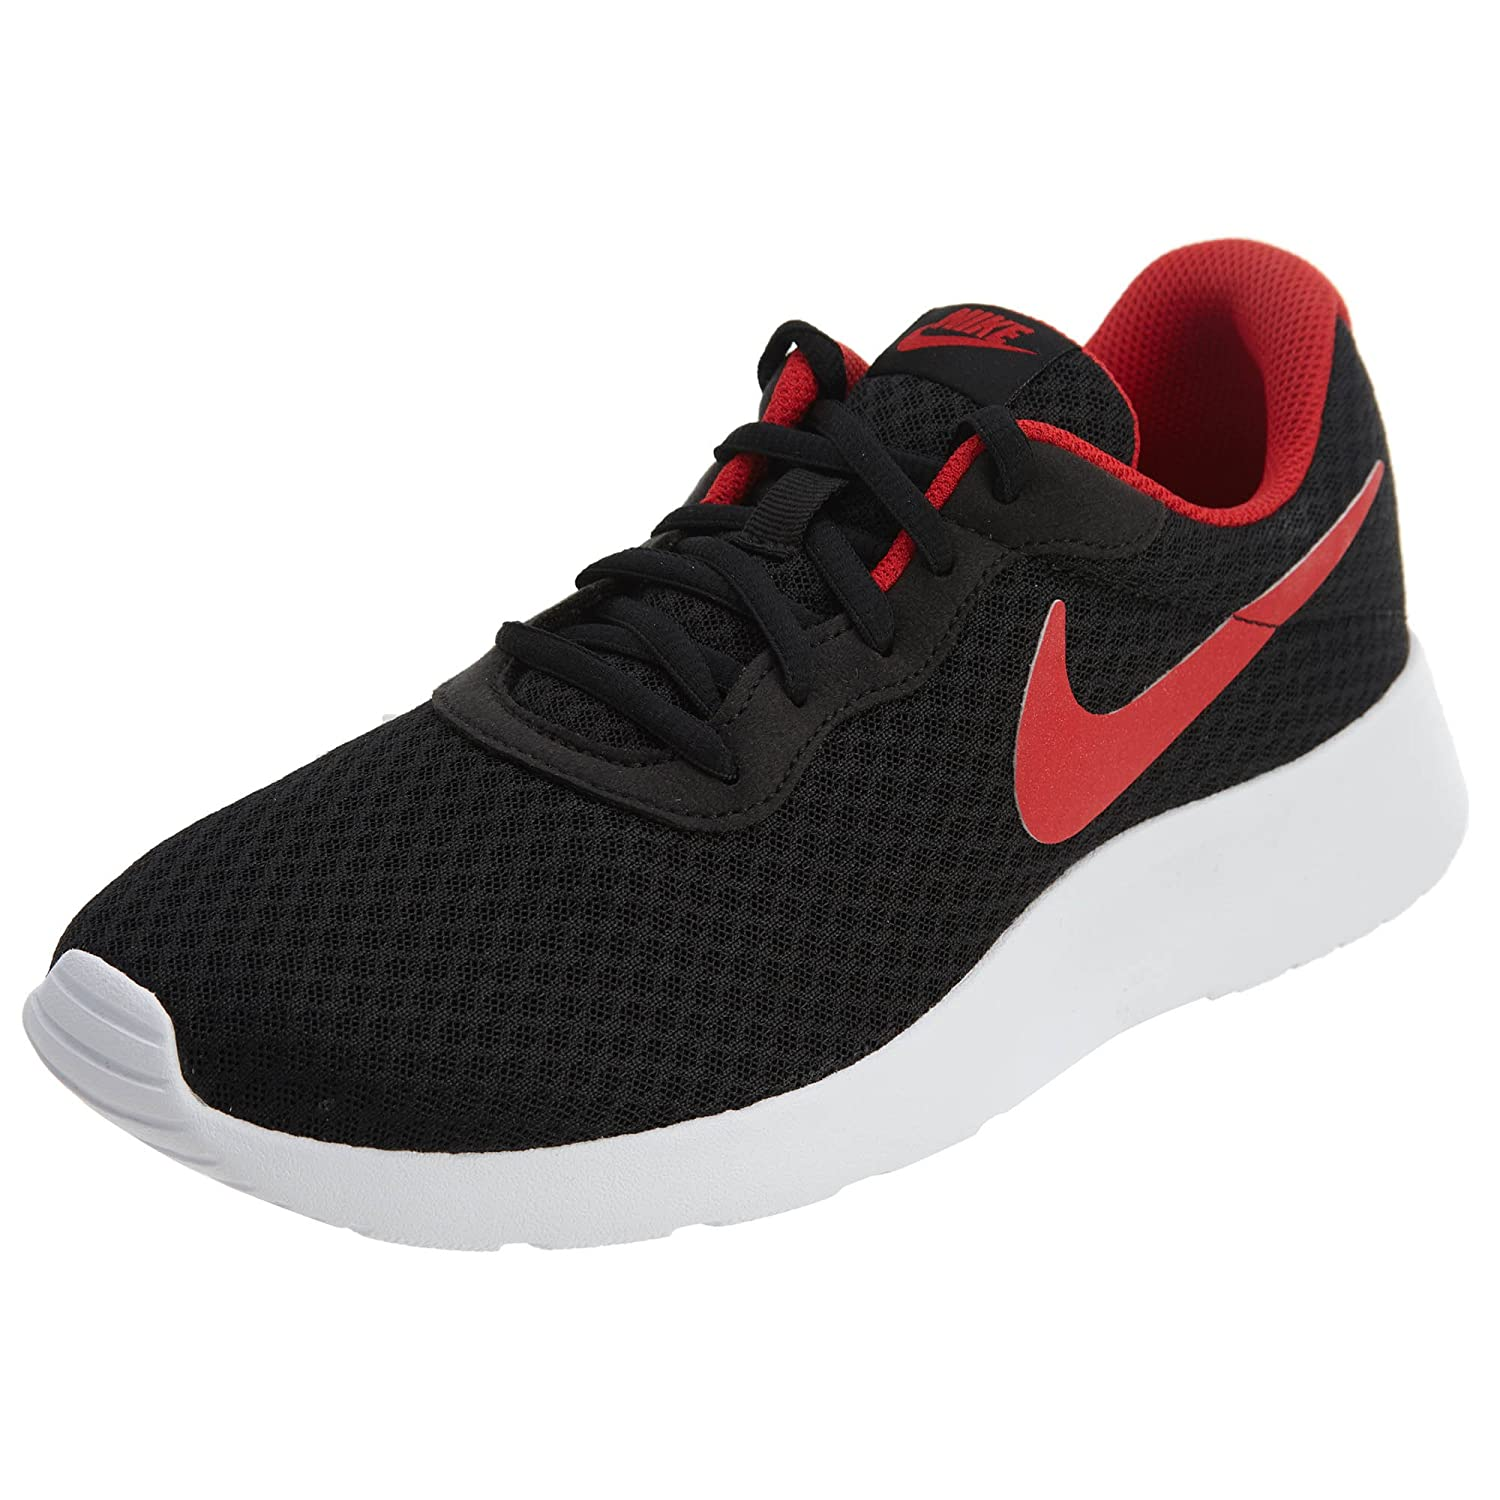 watch 01a10 8069a Amazon.com   Nike Men s Tanjun Black   University Red-white Running Shoe 11  Men US   Road Running